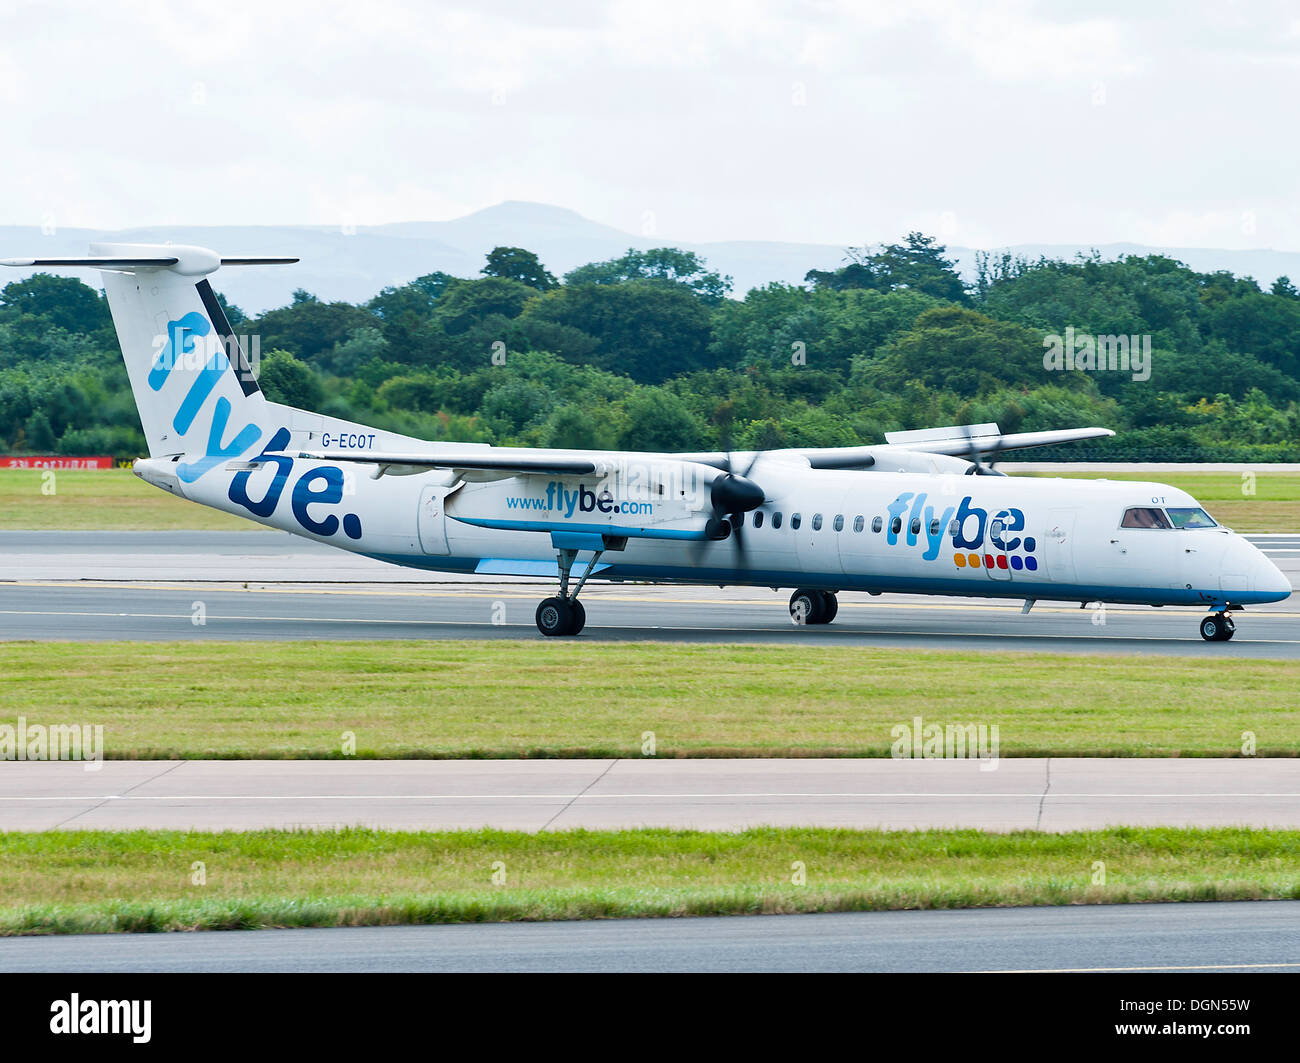 FlyBe Bombardier DHC-8 Q400 Dash8 Airliner Taxiing at Manchester Airport England United Kingdom - Stock Image